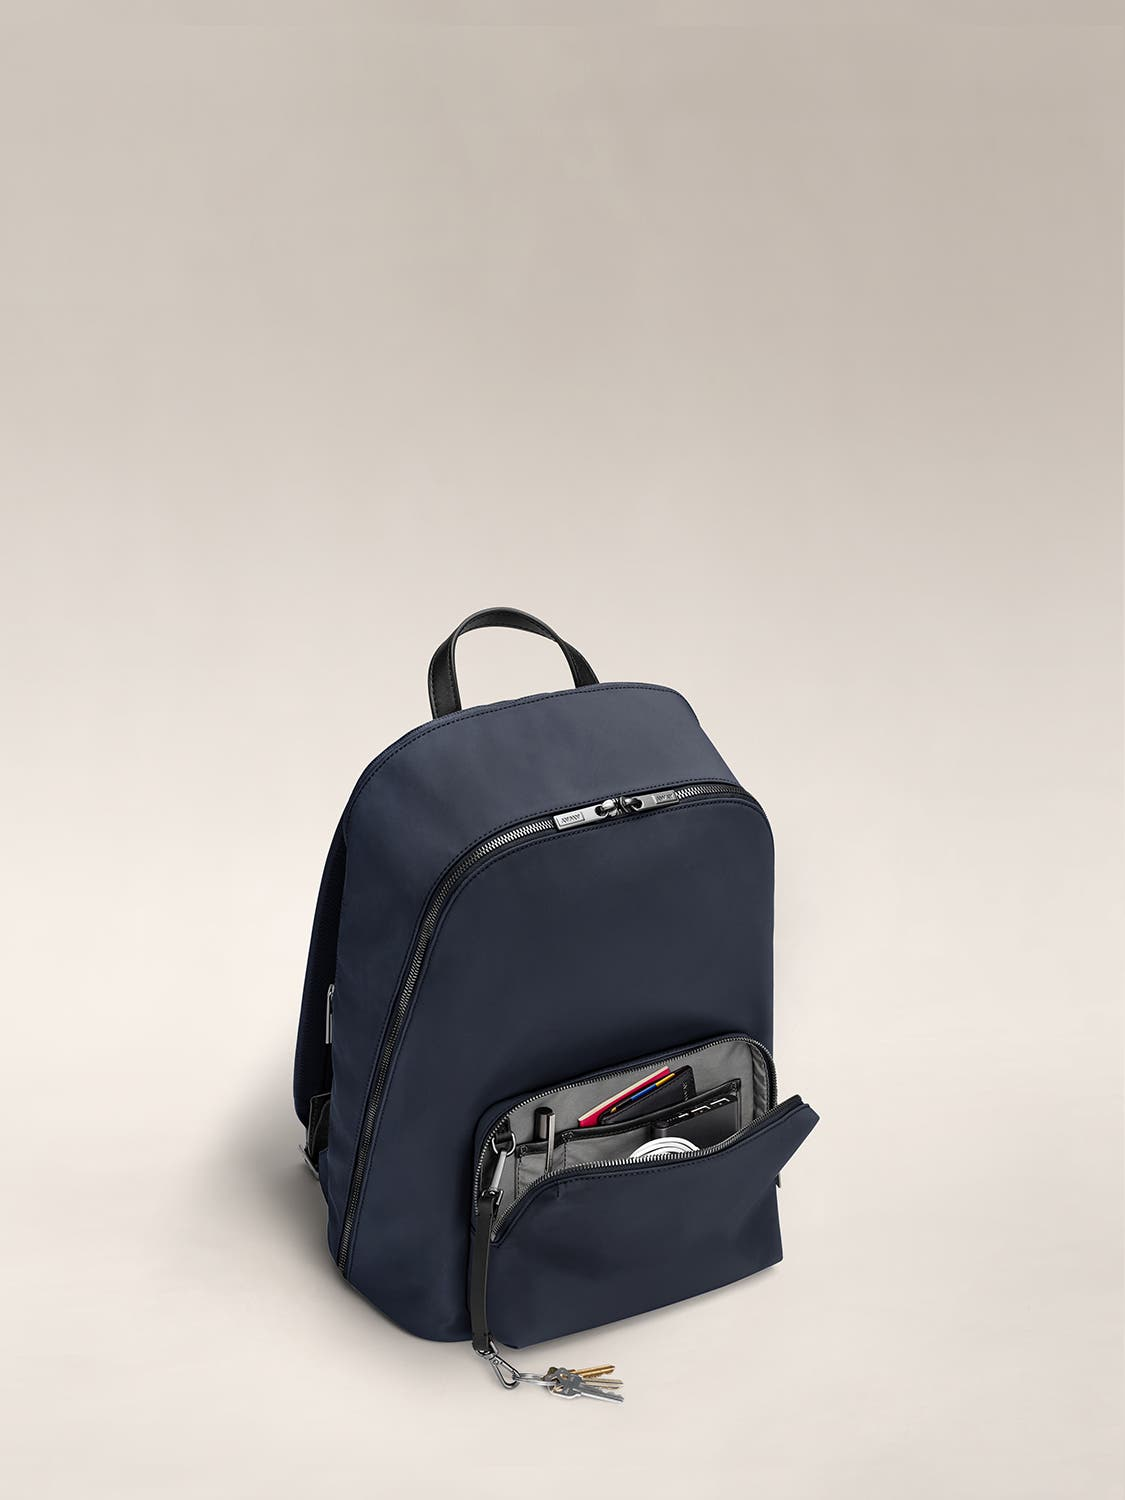 Small front pocket of a navy blue backpack unzipped and showing various accessories and documents organized inside.